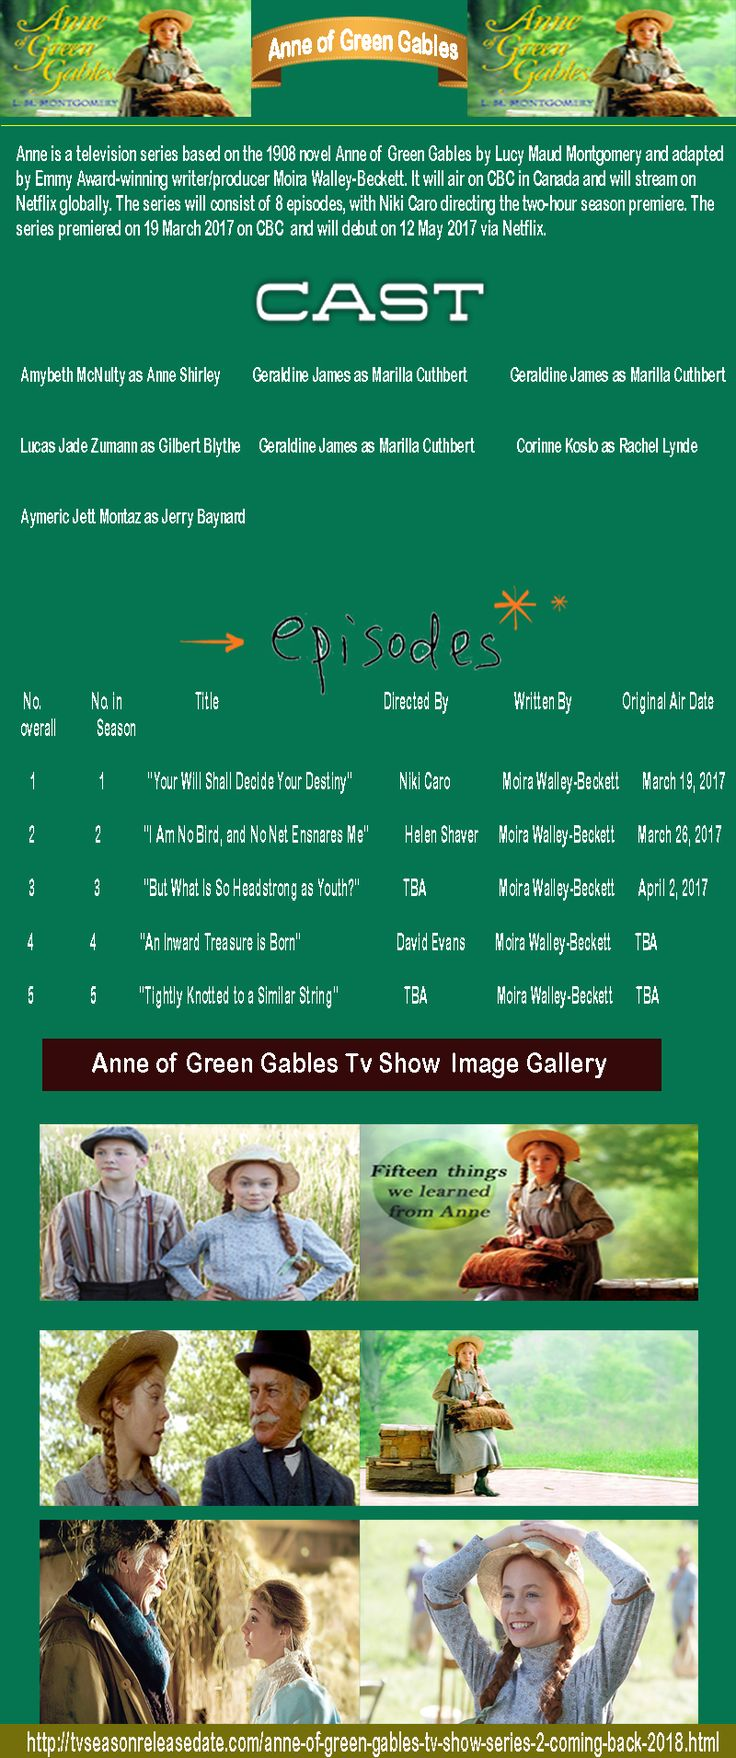 must see essayist pins kurt vonnegut quotes role models and anne is a tv arrangement in light of the 1908 novel anne of green gables by